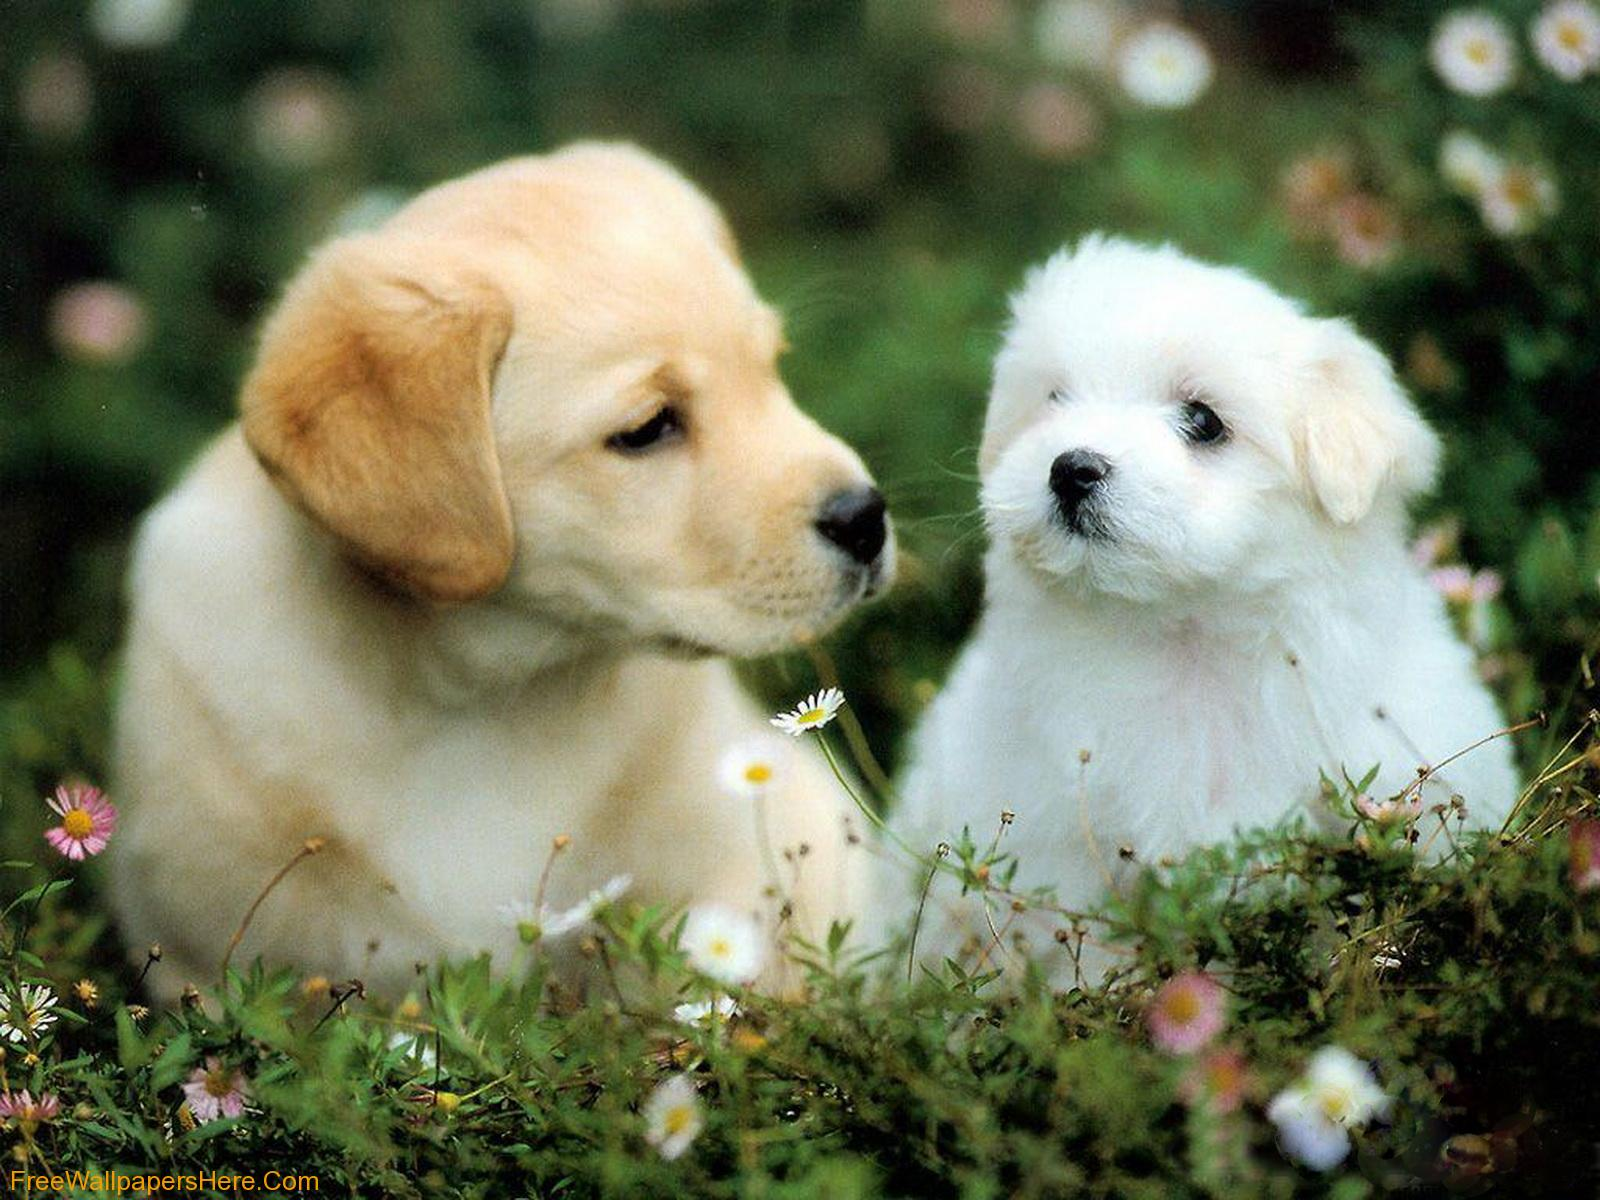 puppy dog wallpaper - photo #9